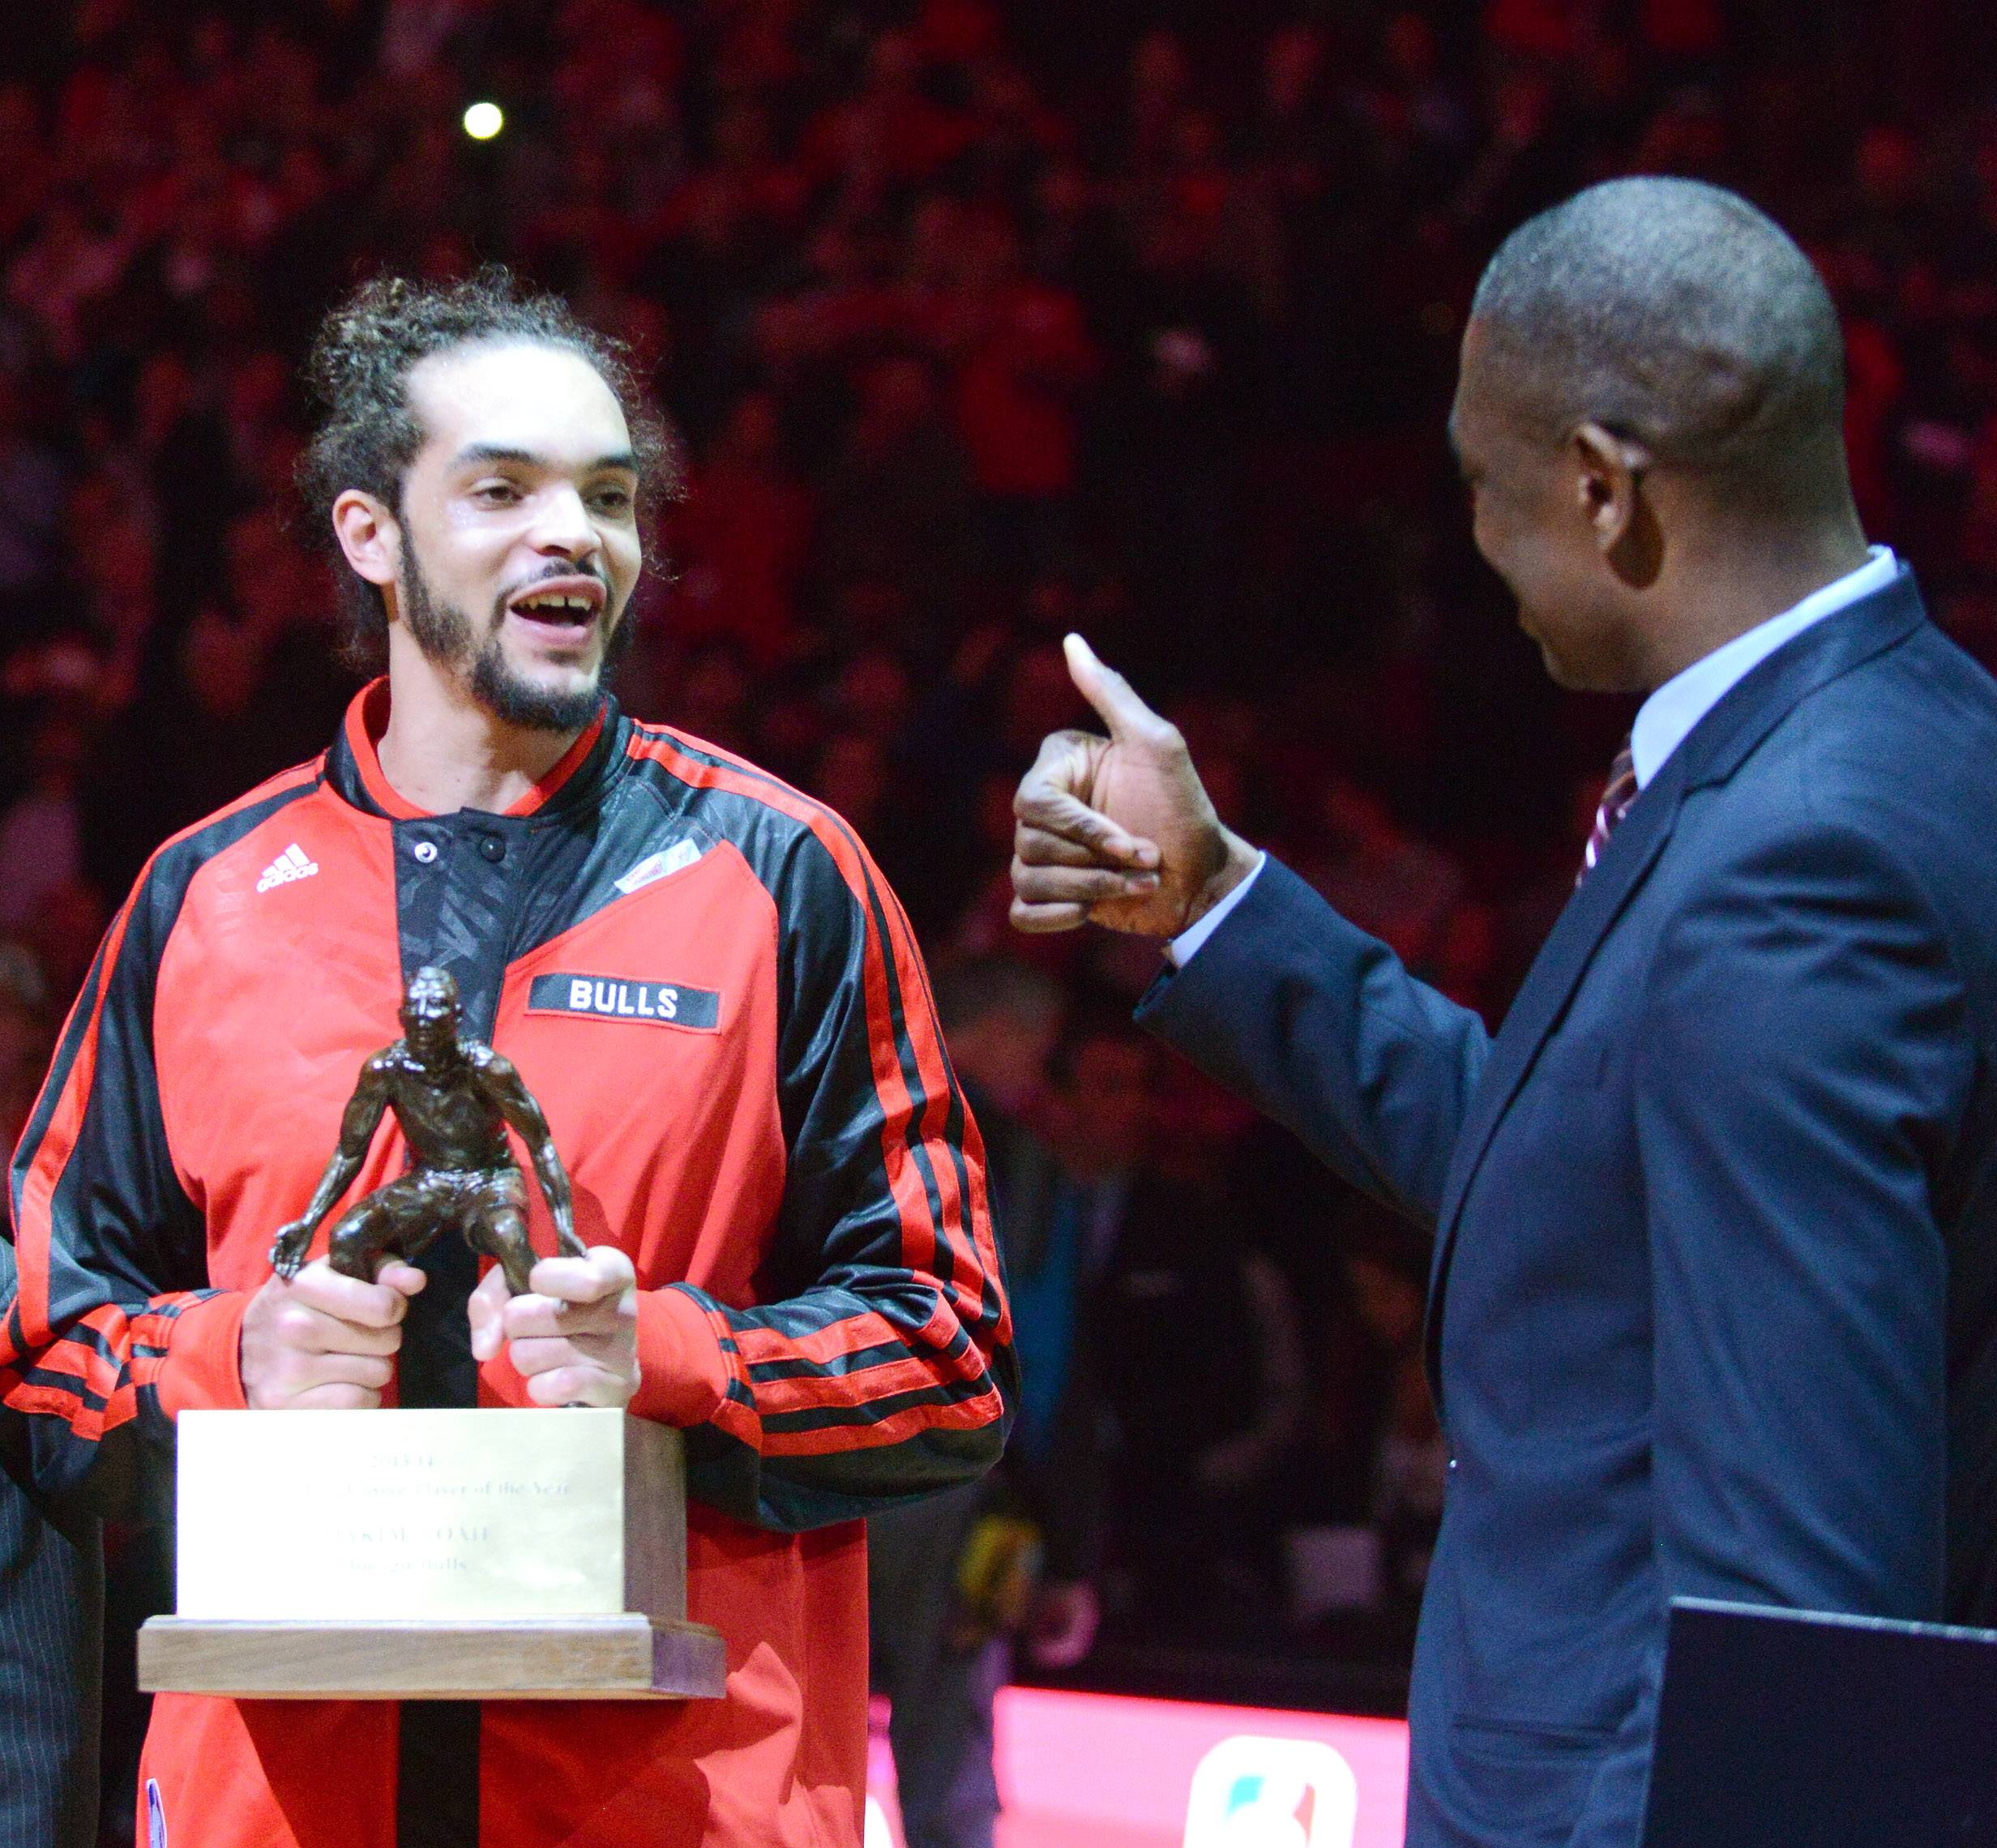 Chicago Bulls center Joakim Noah (13) gets a thumbs up from Dikembe Mutombo  after receiving the Defensive Player of the Year award before Tuesday's game at the United Center in Chicago.